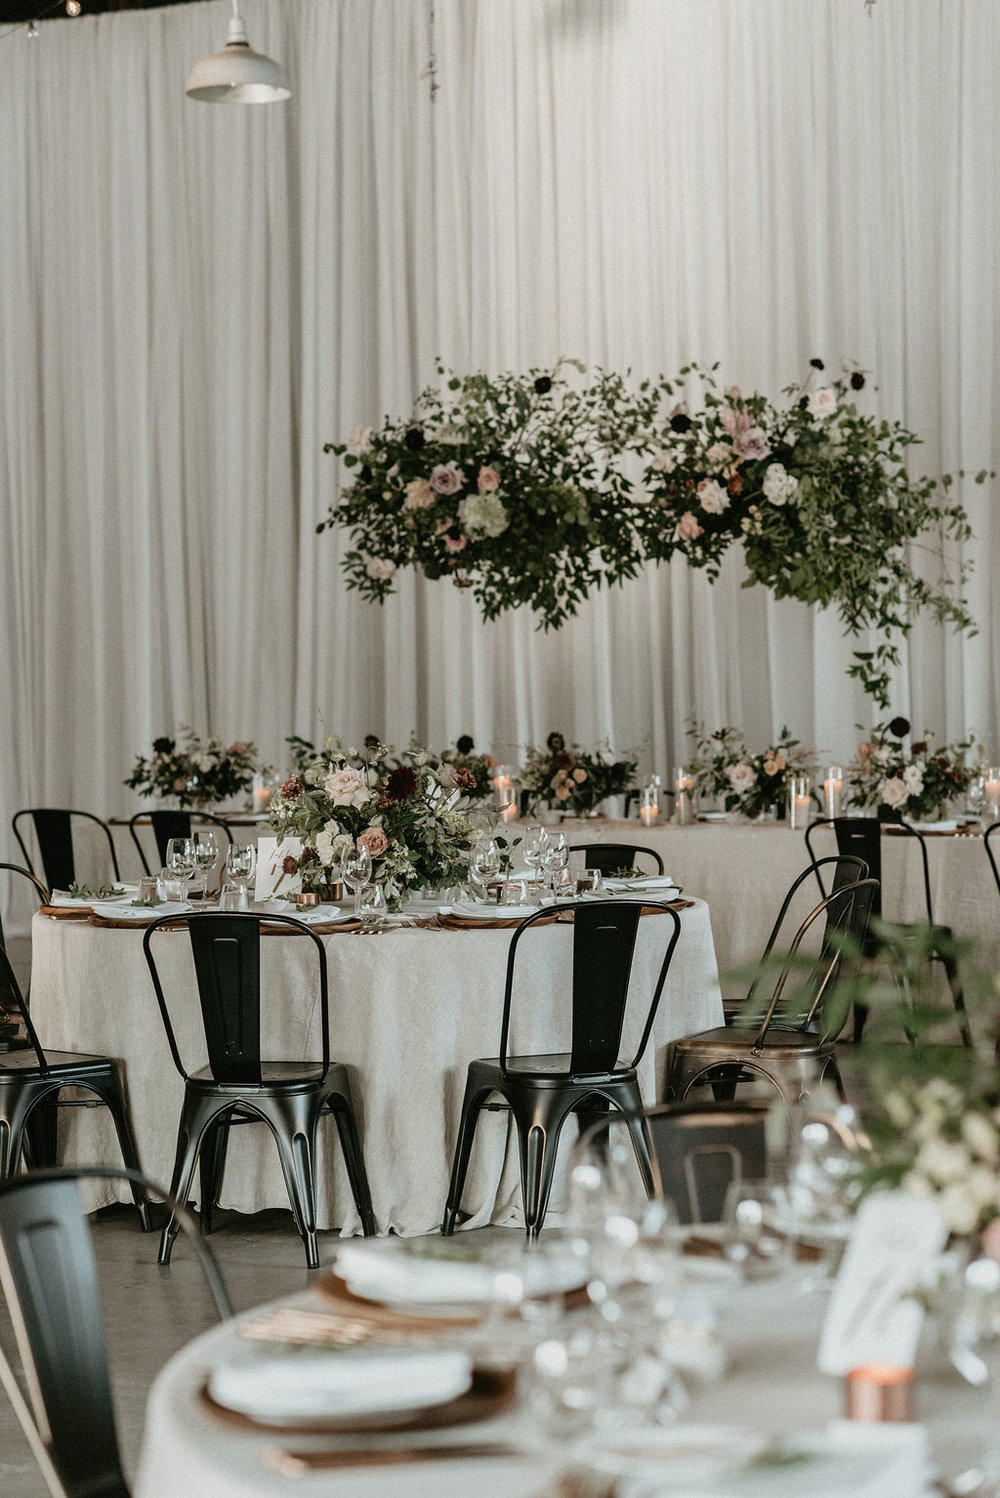 CHANTAL + GAETAN <strong> INDUSTRIAL CHIC WEDDING</strong>